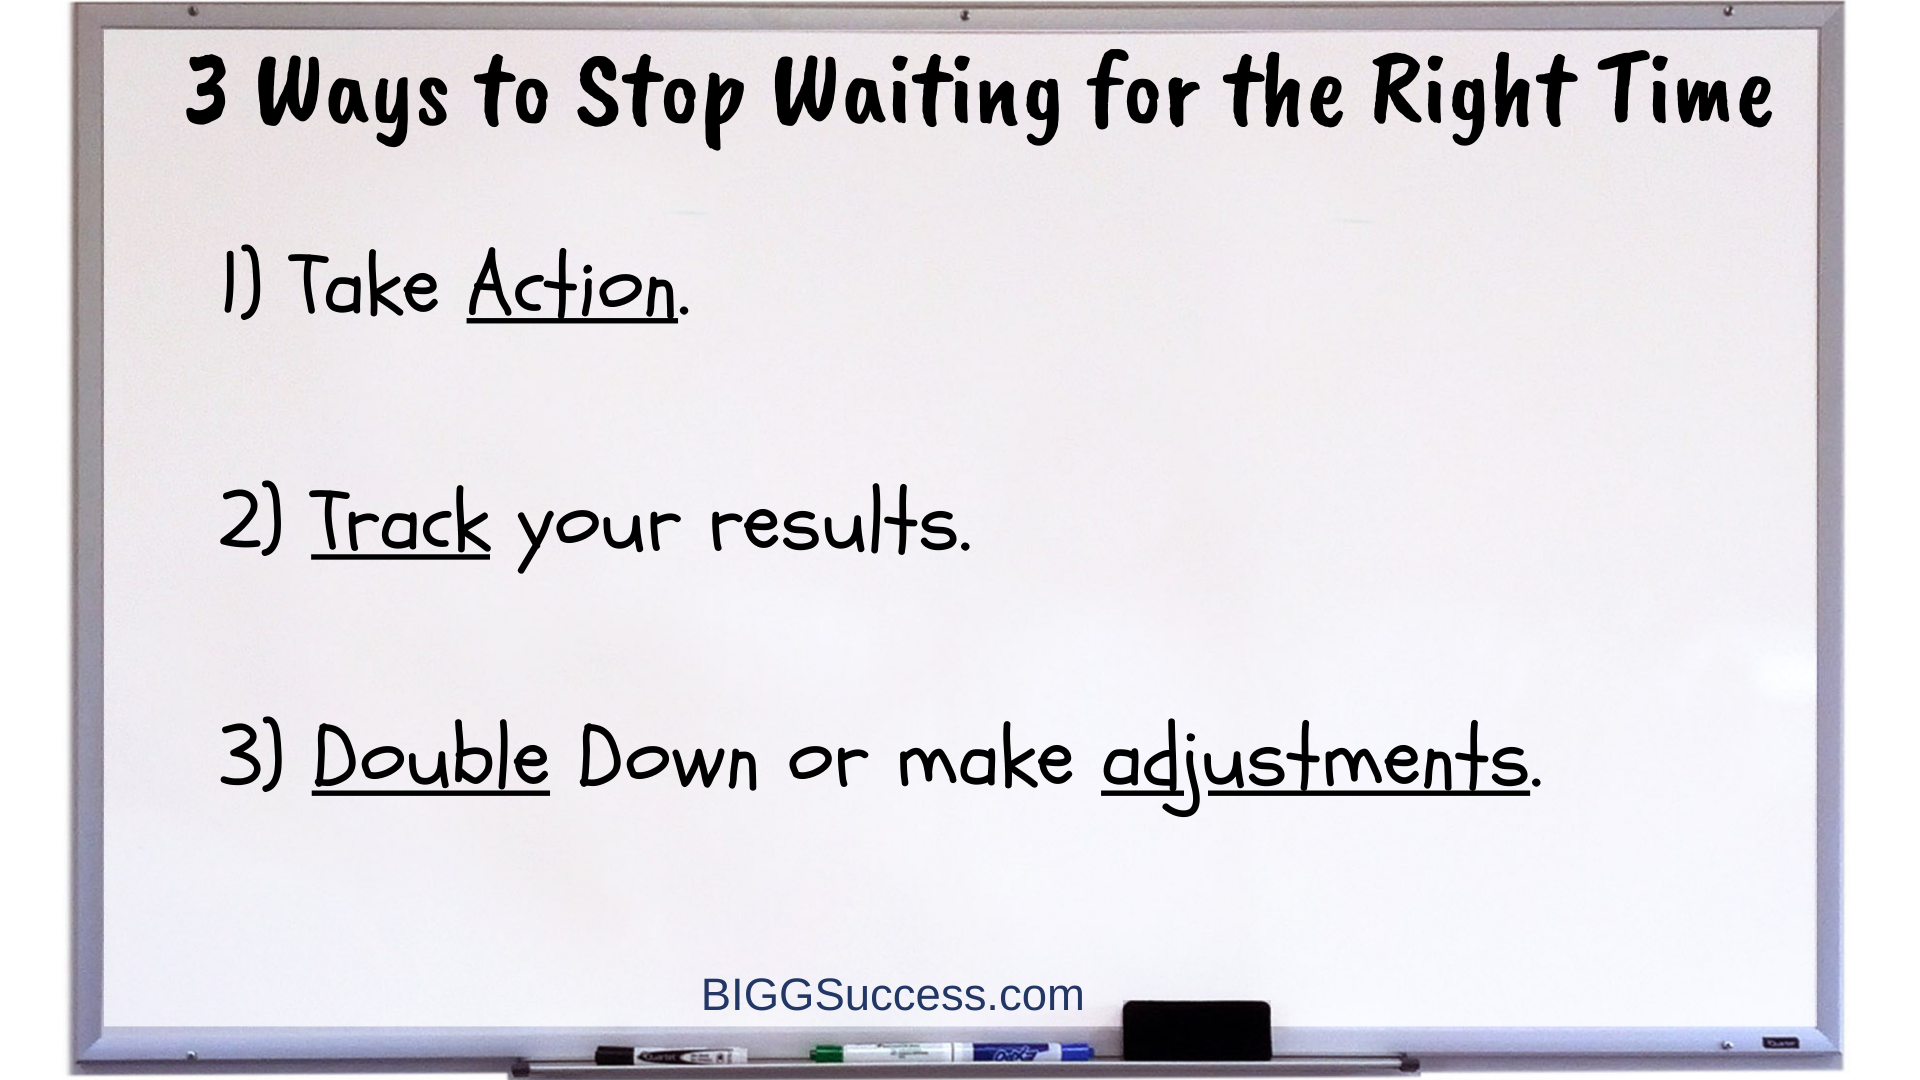 Whiteboard 1058 - 3 Ways to Stop Waiting for the Right Time